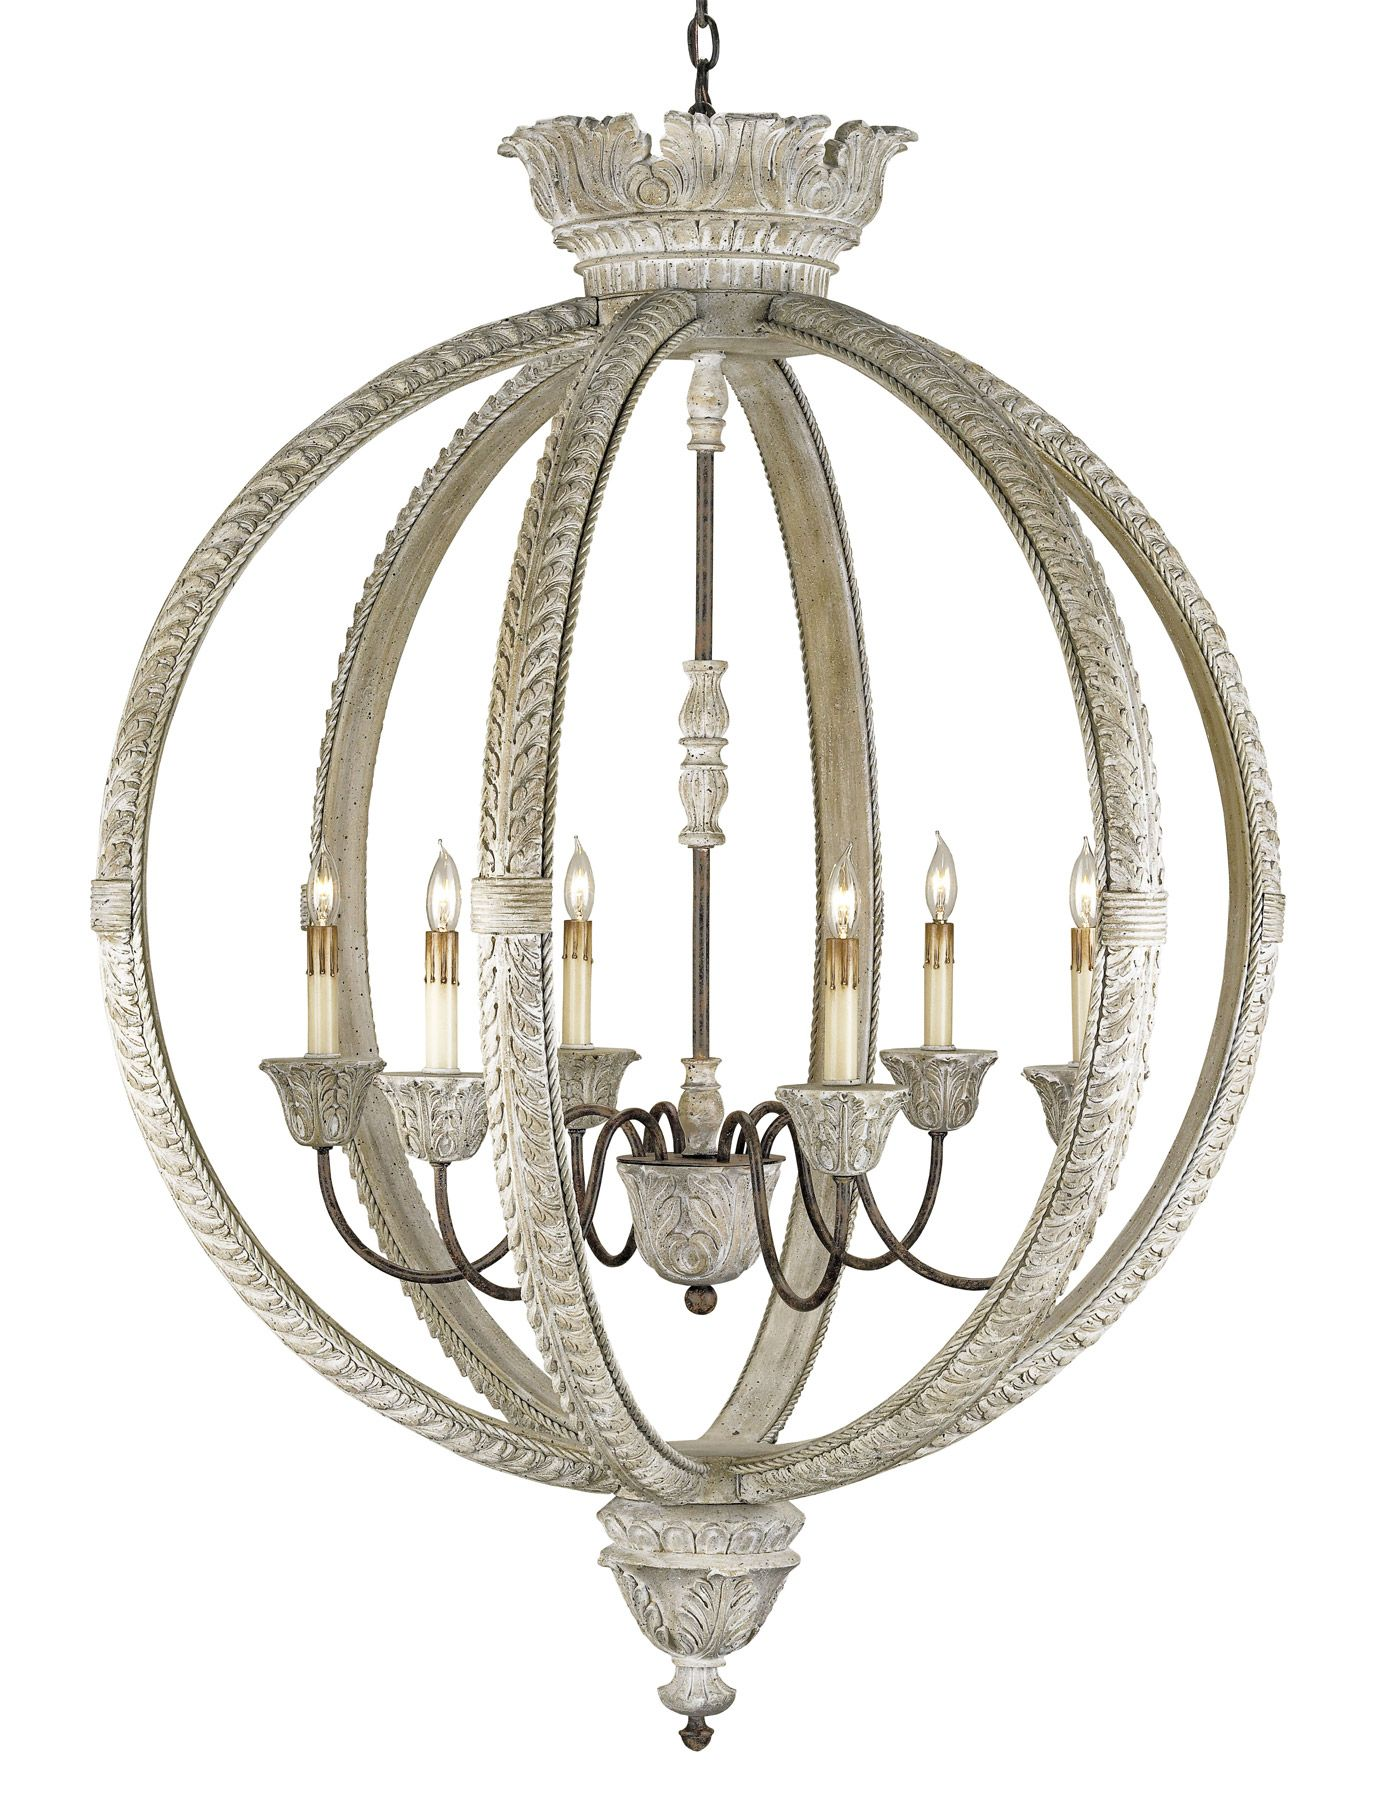 MISC currey chandelier You light up my life